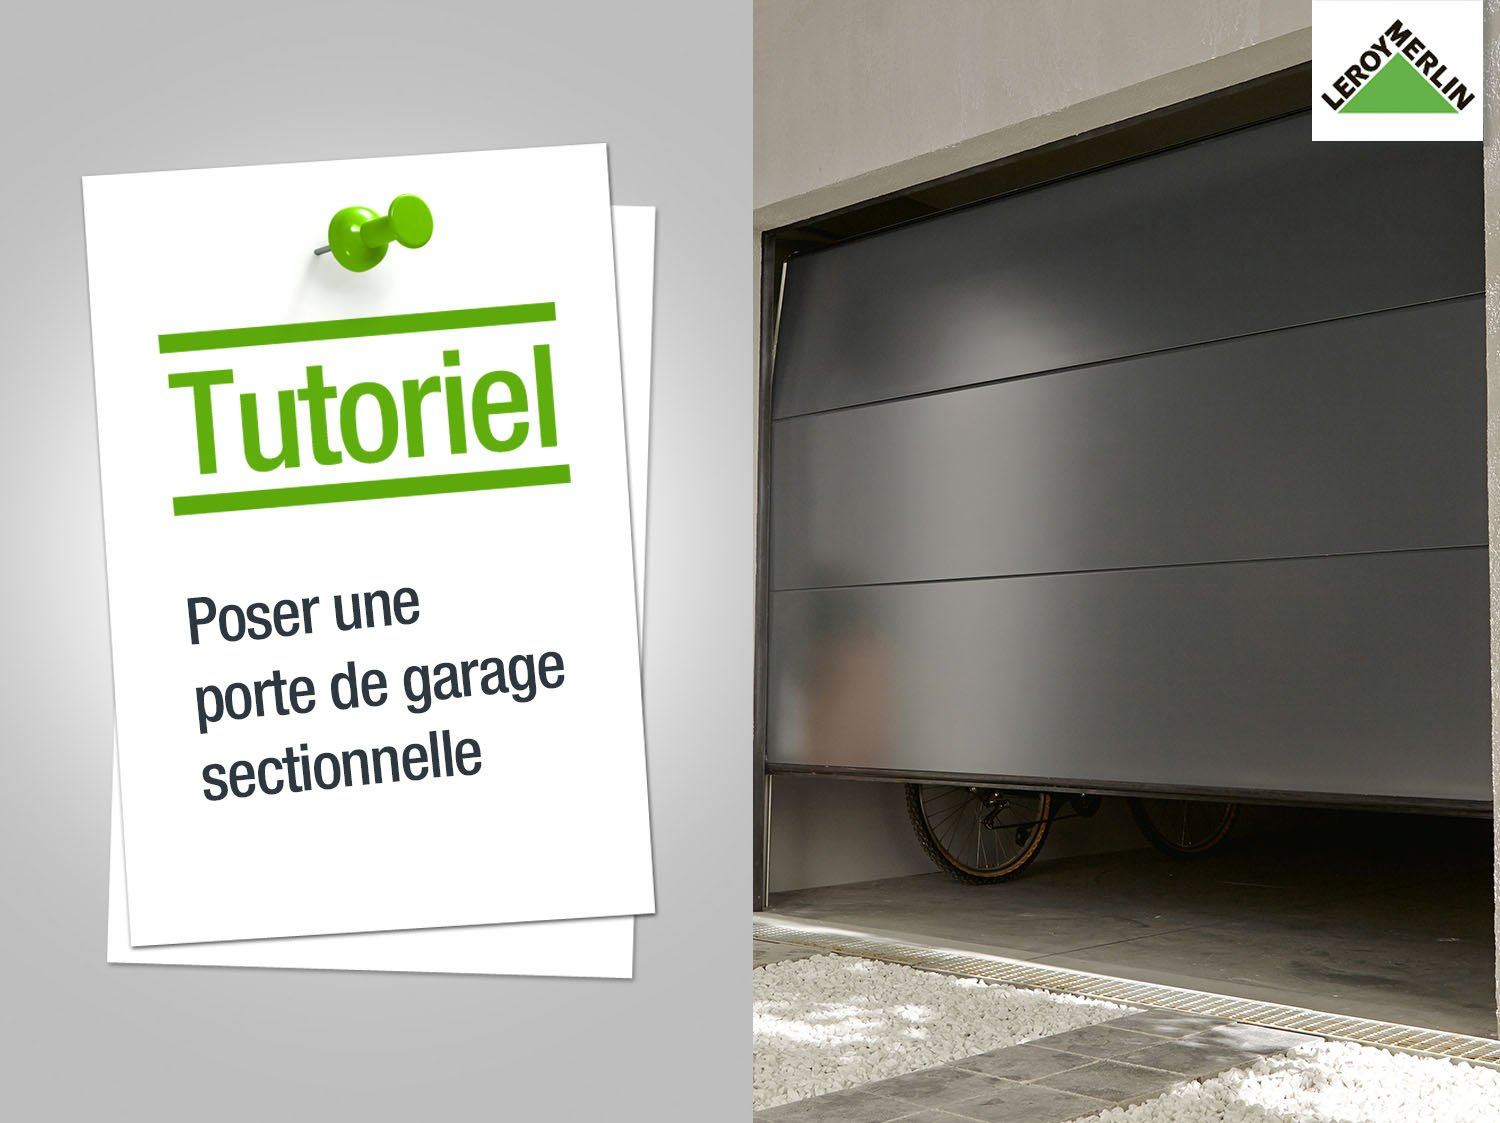 porte de garage sectionnelle leroy merlin sur mesure On isolation porte de garage leroy merlin